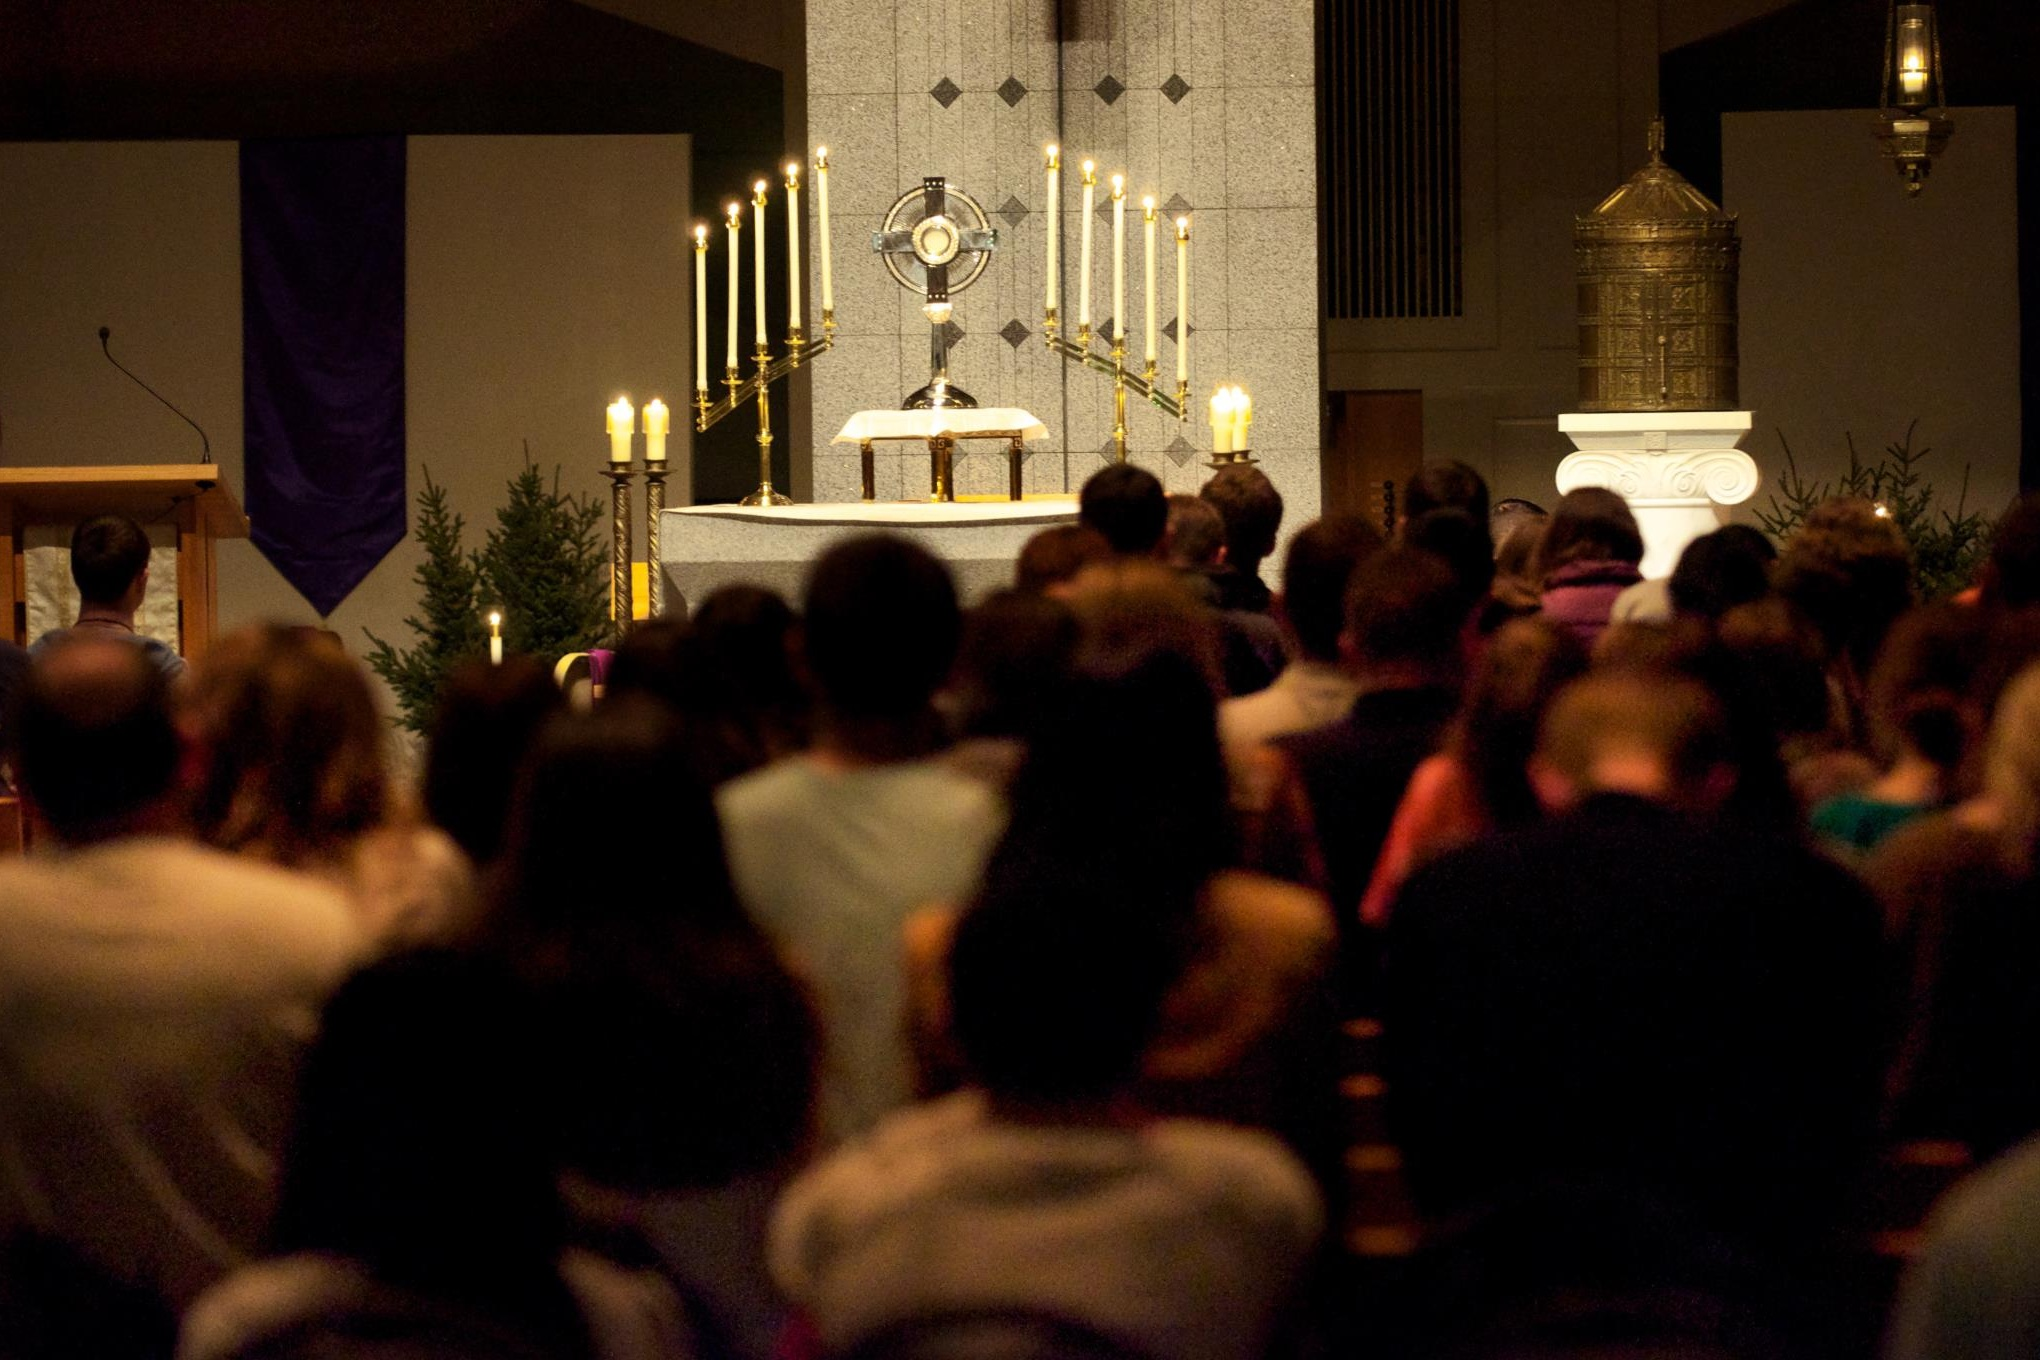 Cor Jesu - A monthly evening of Adoration, confessions, and praise and worship. Every first Friday of the month during the school year at the St. Paul Seminary.